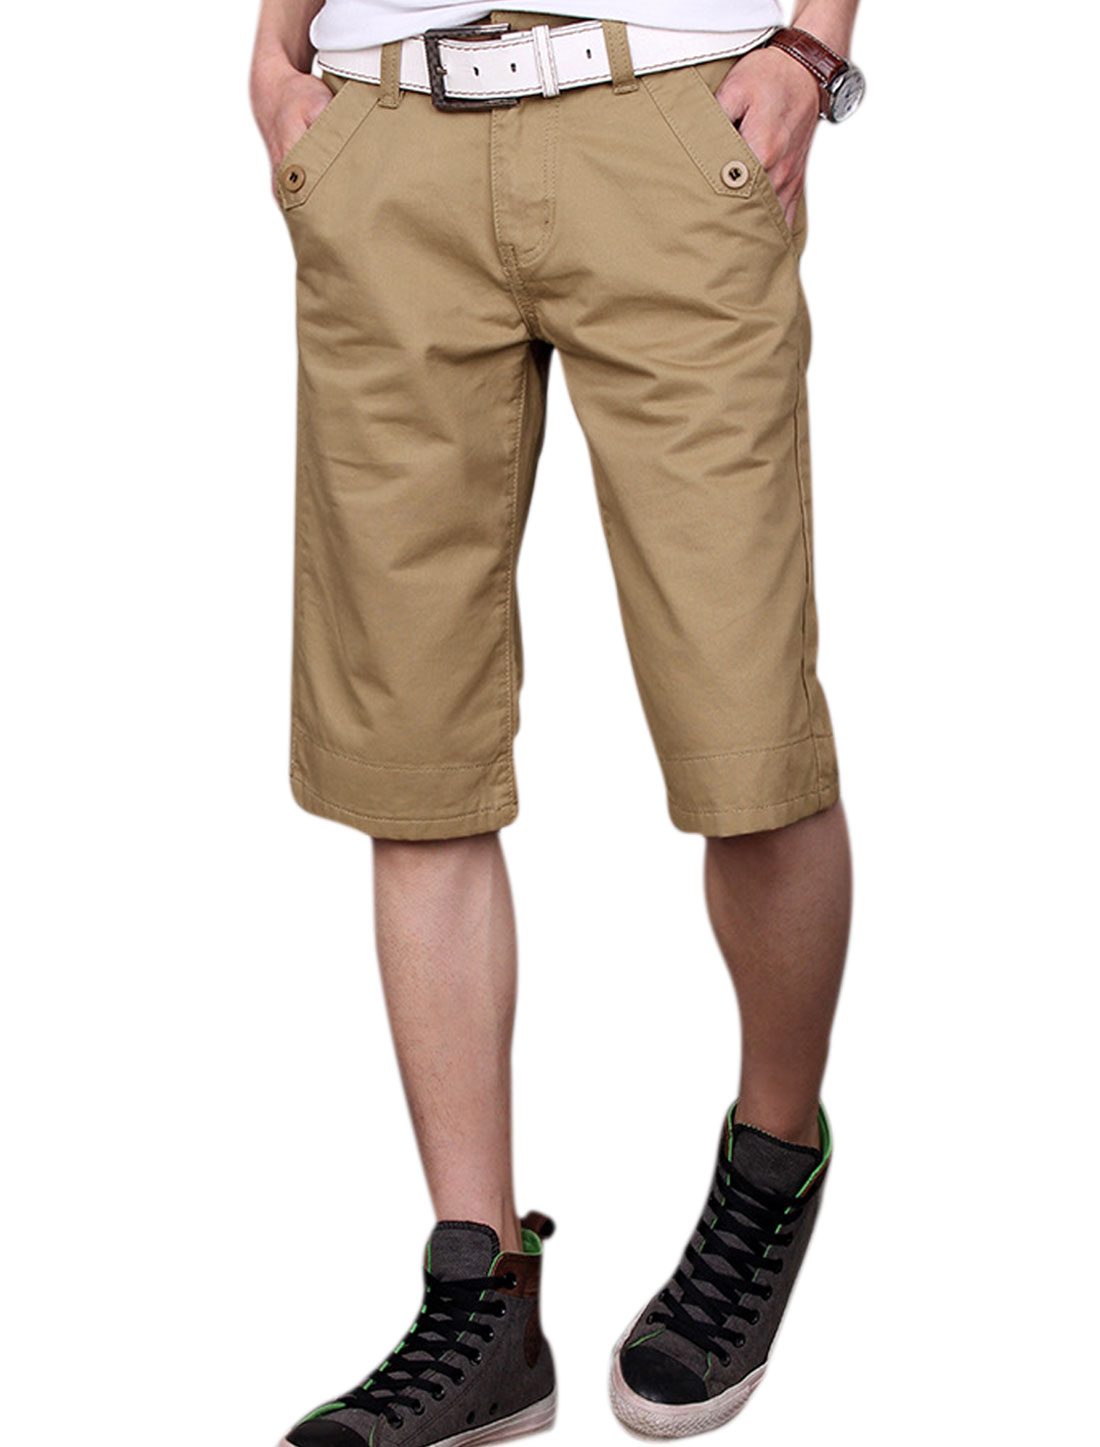 Man Hip Pockets Belt Loop Button Decor Casual Shorts Khaki W32